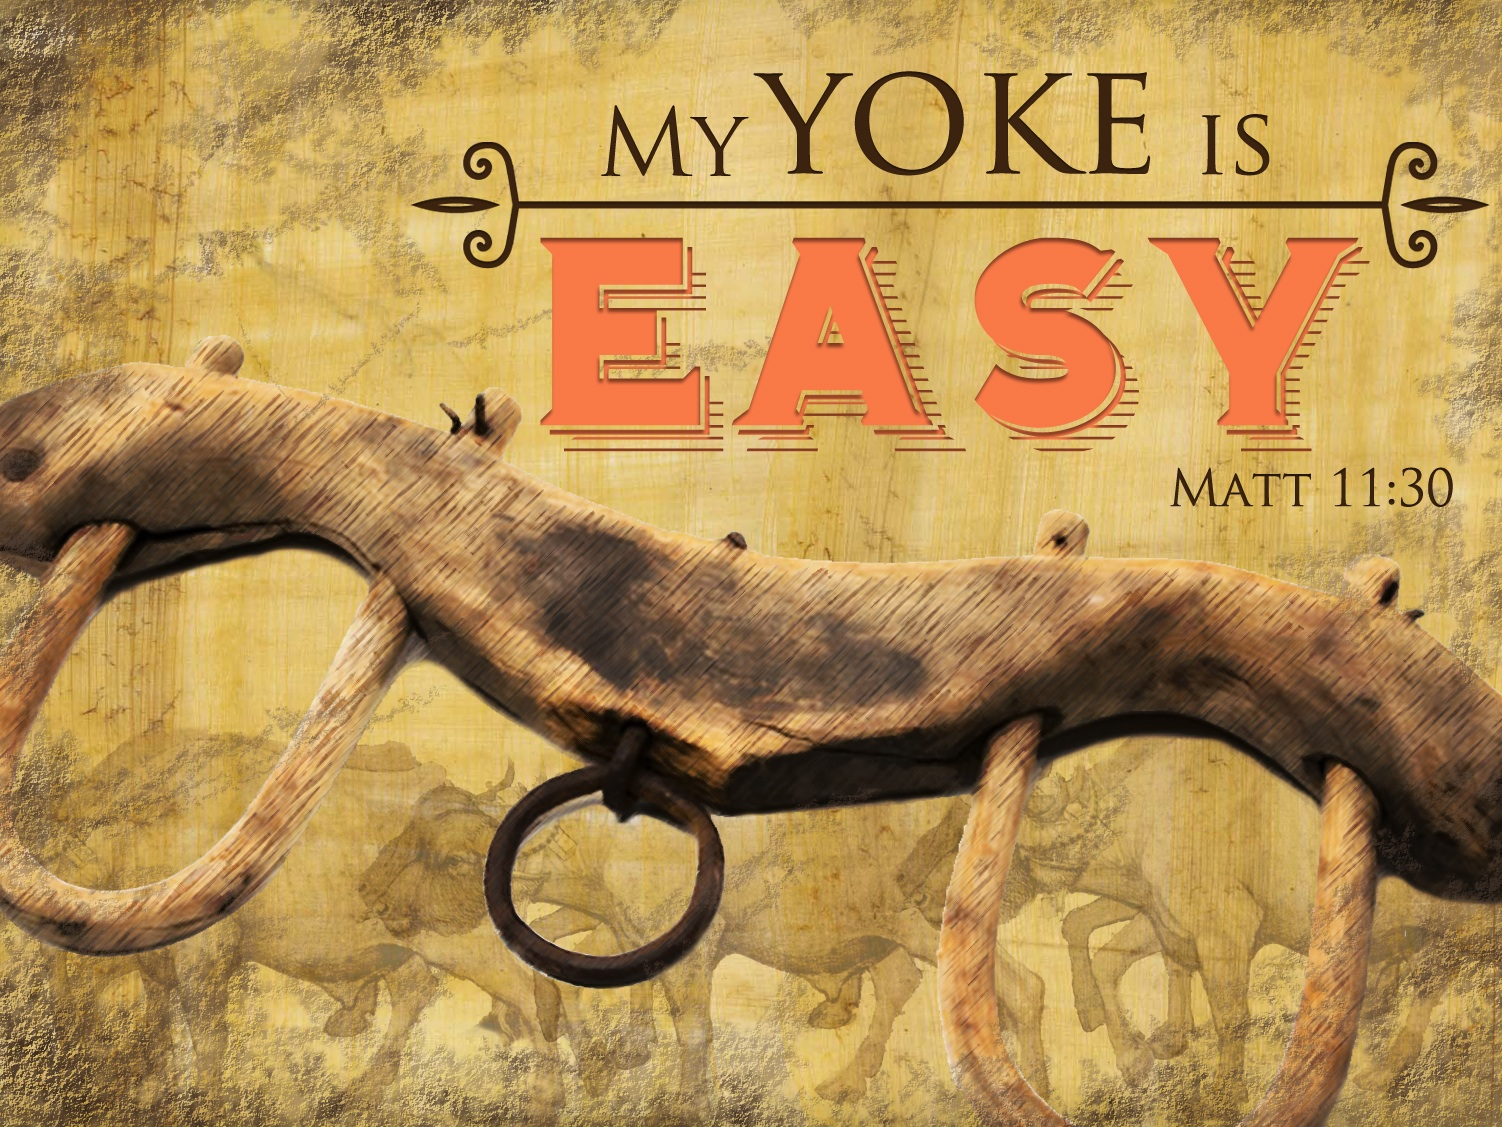 """Jesus did not say """"My yoke is hard but hell is harder."""""""